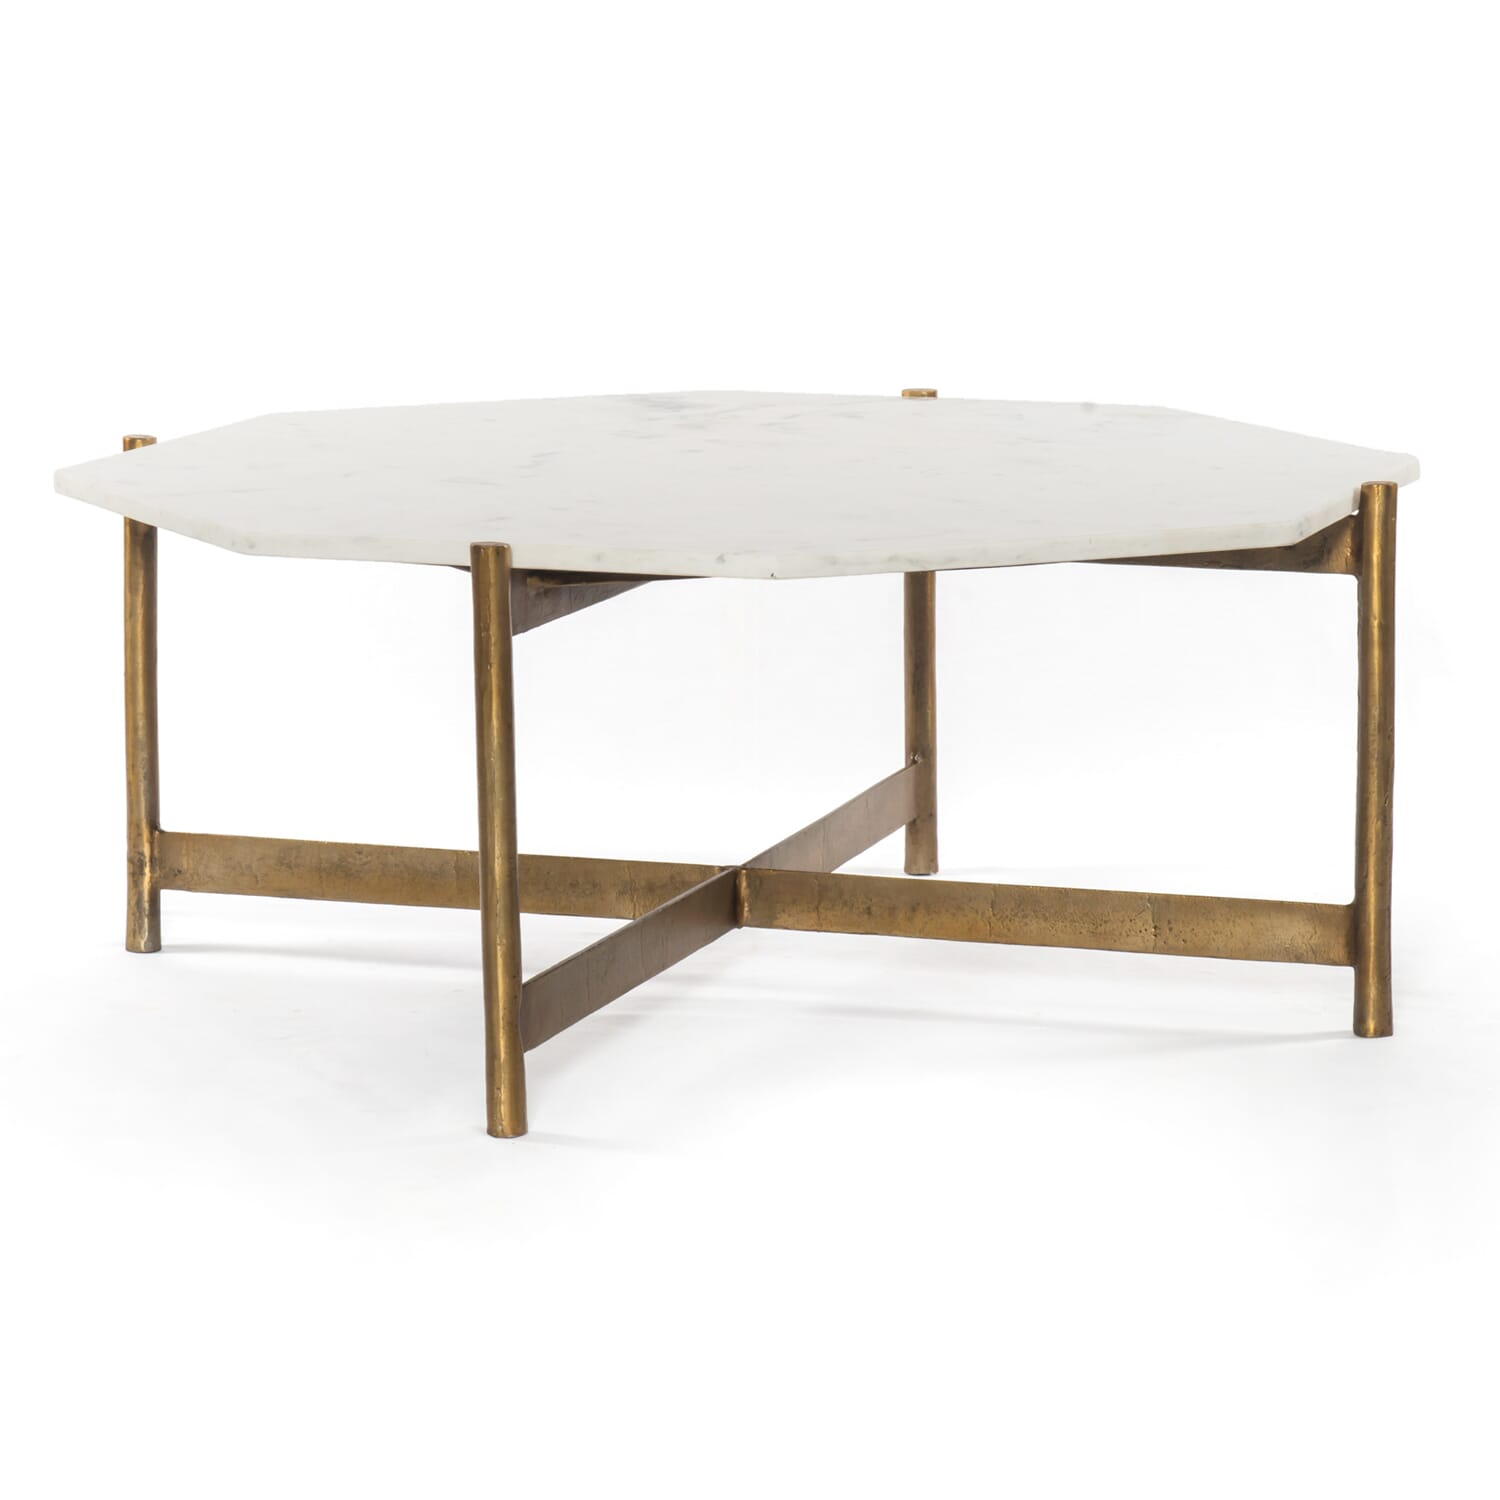 Stuart Coffee Table | Closeout, Furniture, Living Room, Tables, Furniture |  August Haven